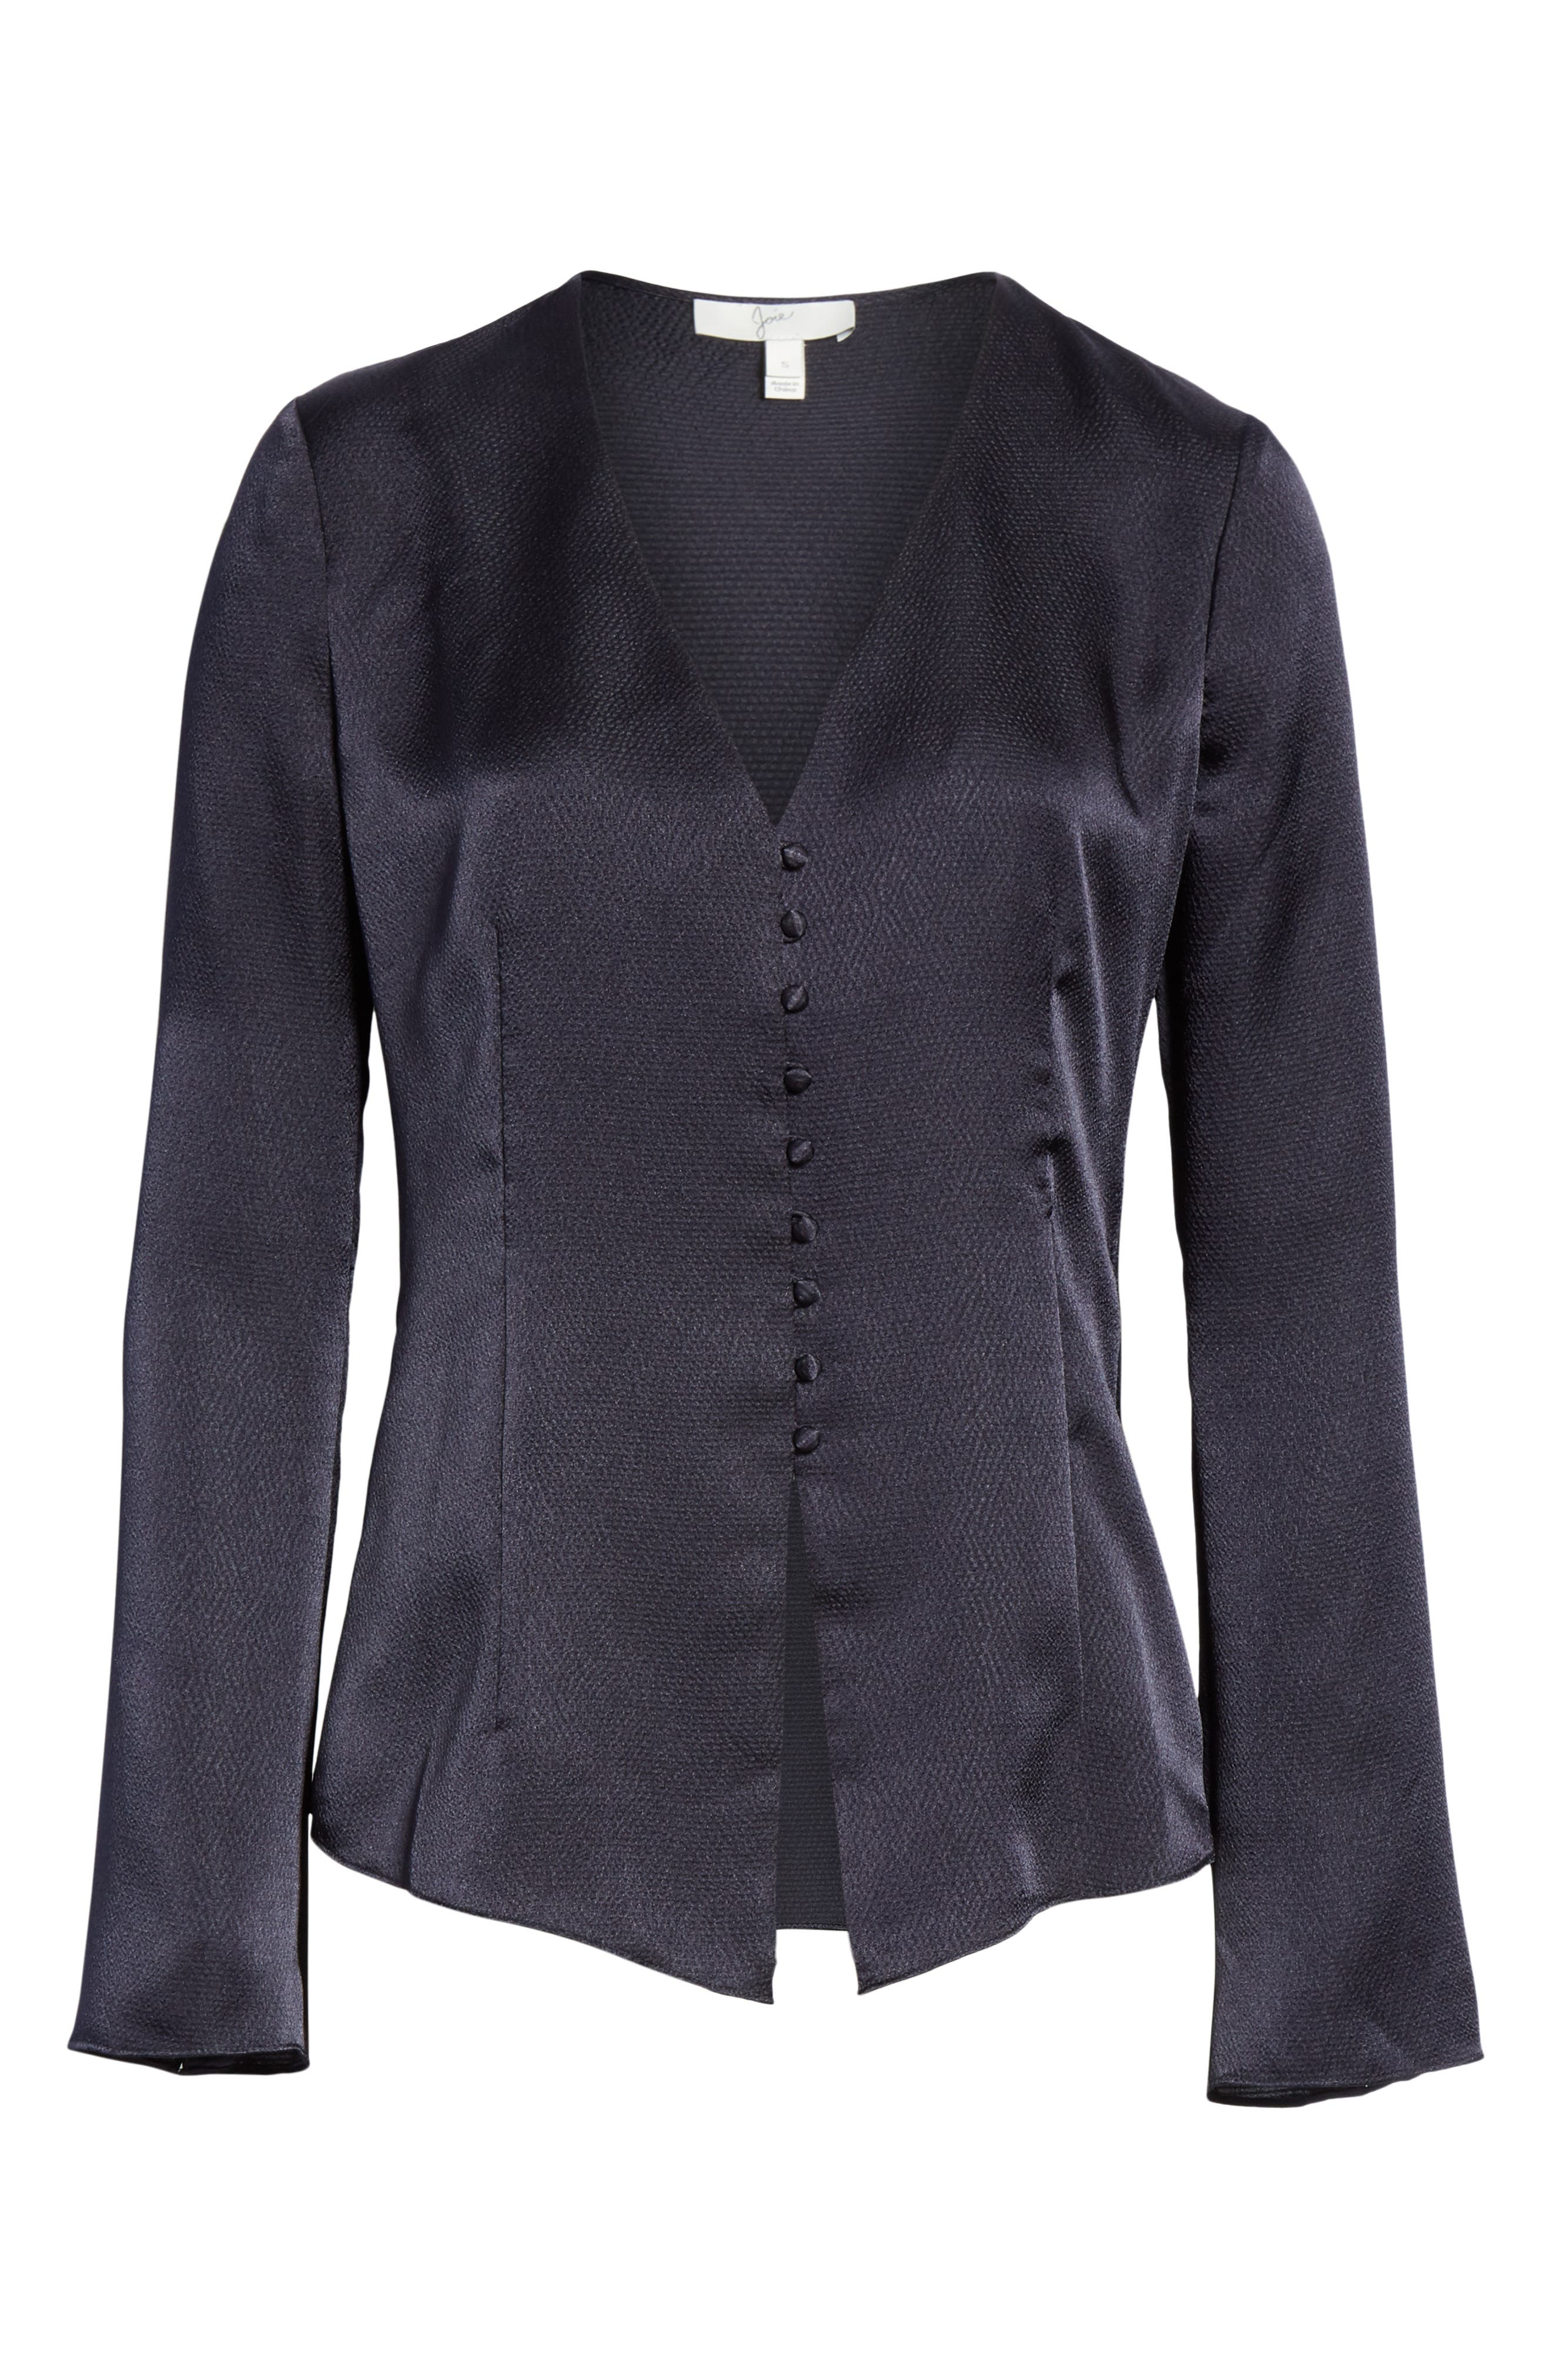 JOIE, Madora Top, Alternate thumbnail 6, color, MIDNIGHT